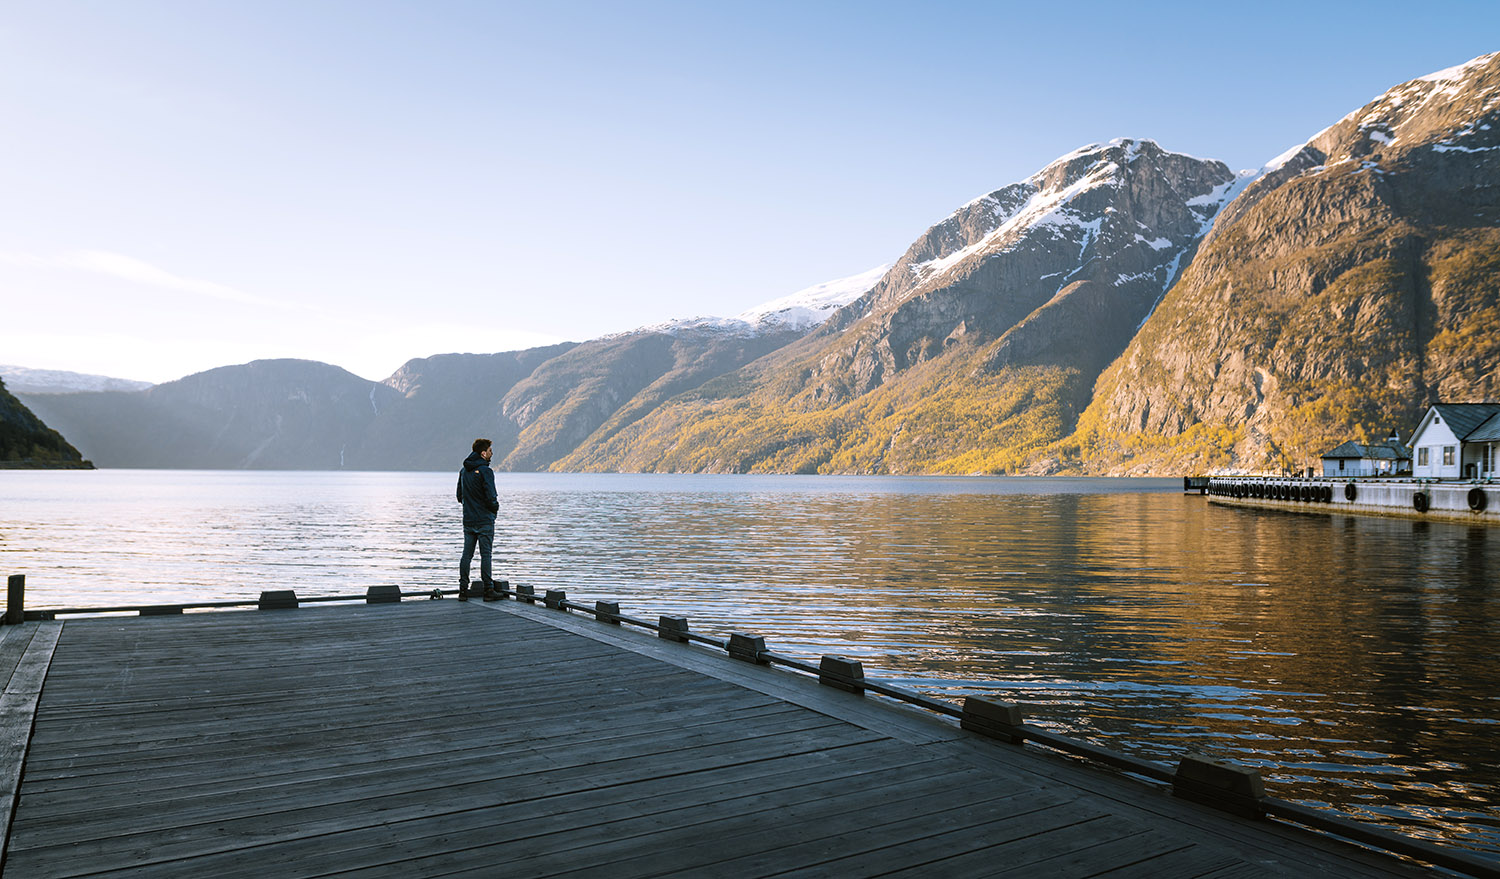 Travel photography in the fjords of Norway